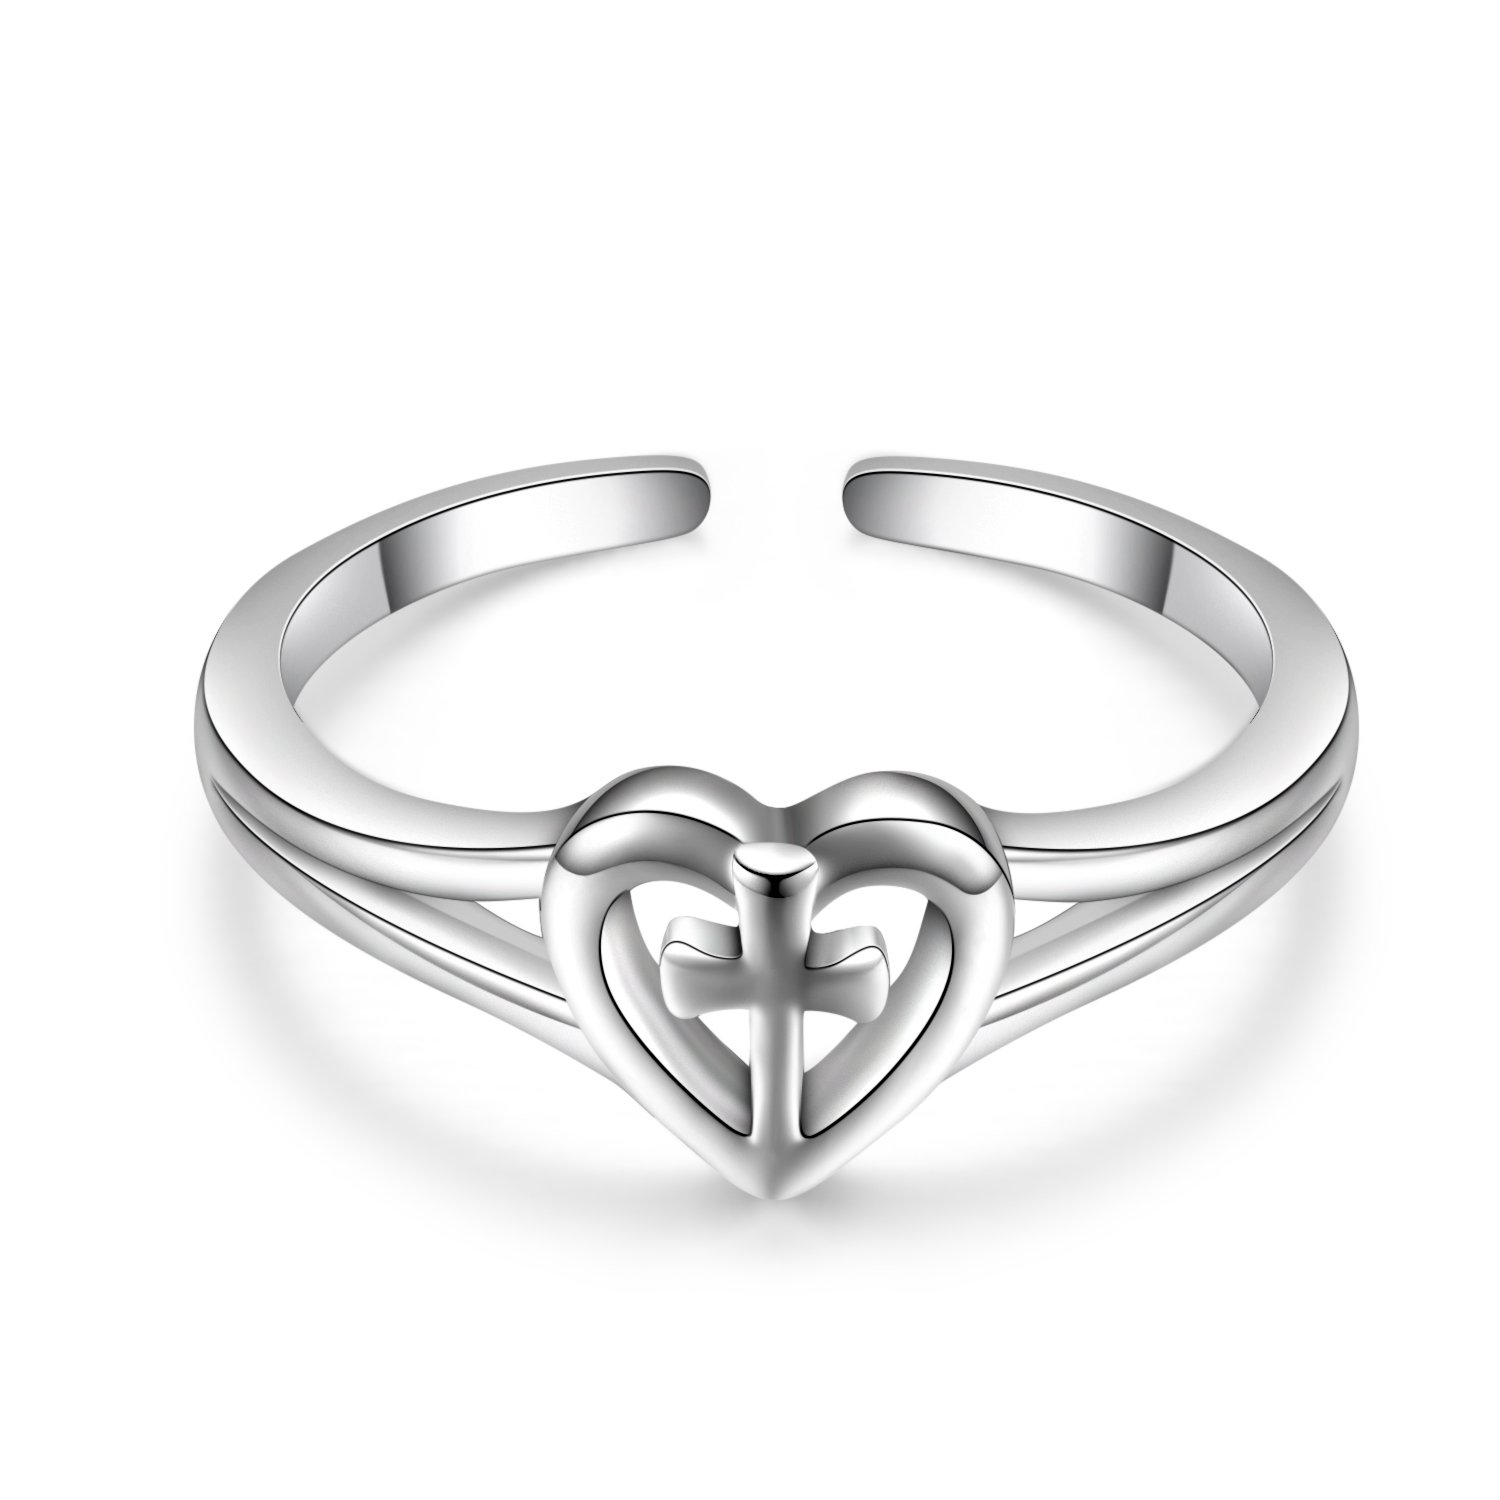 Sterling Silver Love Cross Rings Adjustable Open Polished Christian Heart Promise Anniversary Rings for Her, Size 7 by LUHE (Image #4)